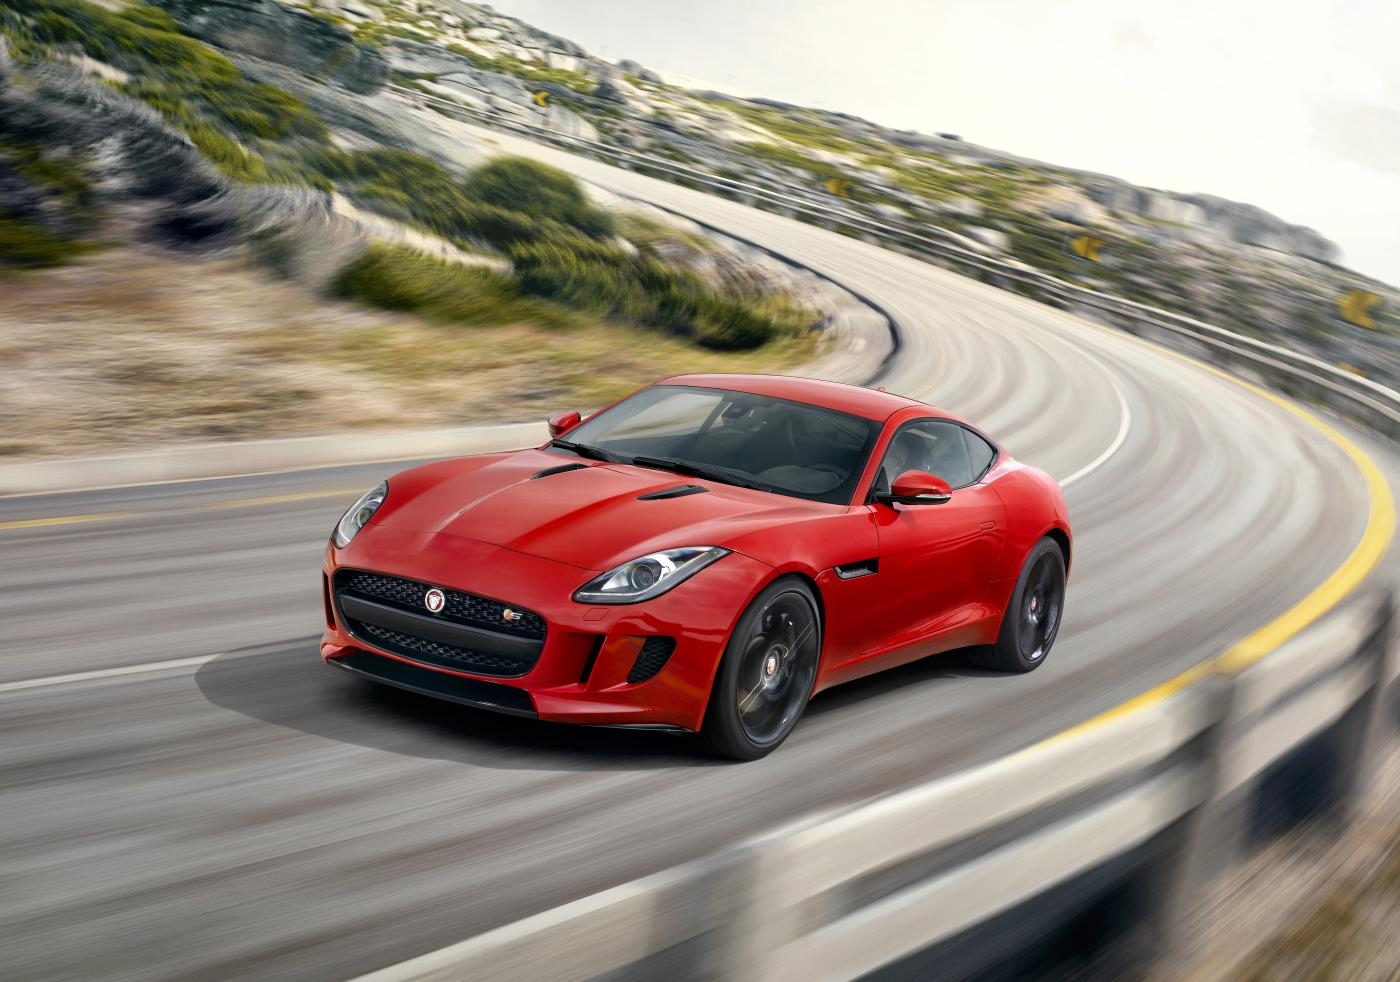 Jaguar F-Type S Coupe (2014)